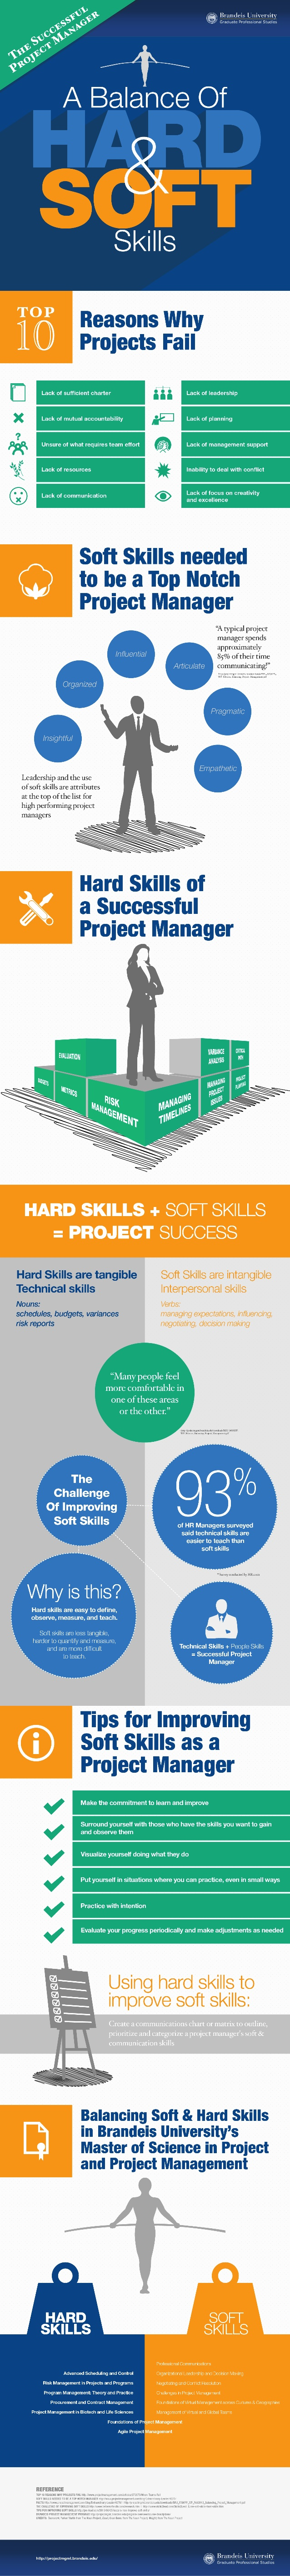 the-hard-soft-skills-needed-for-successful-project-management-1-638